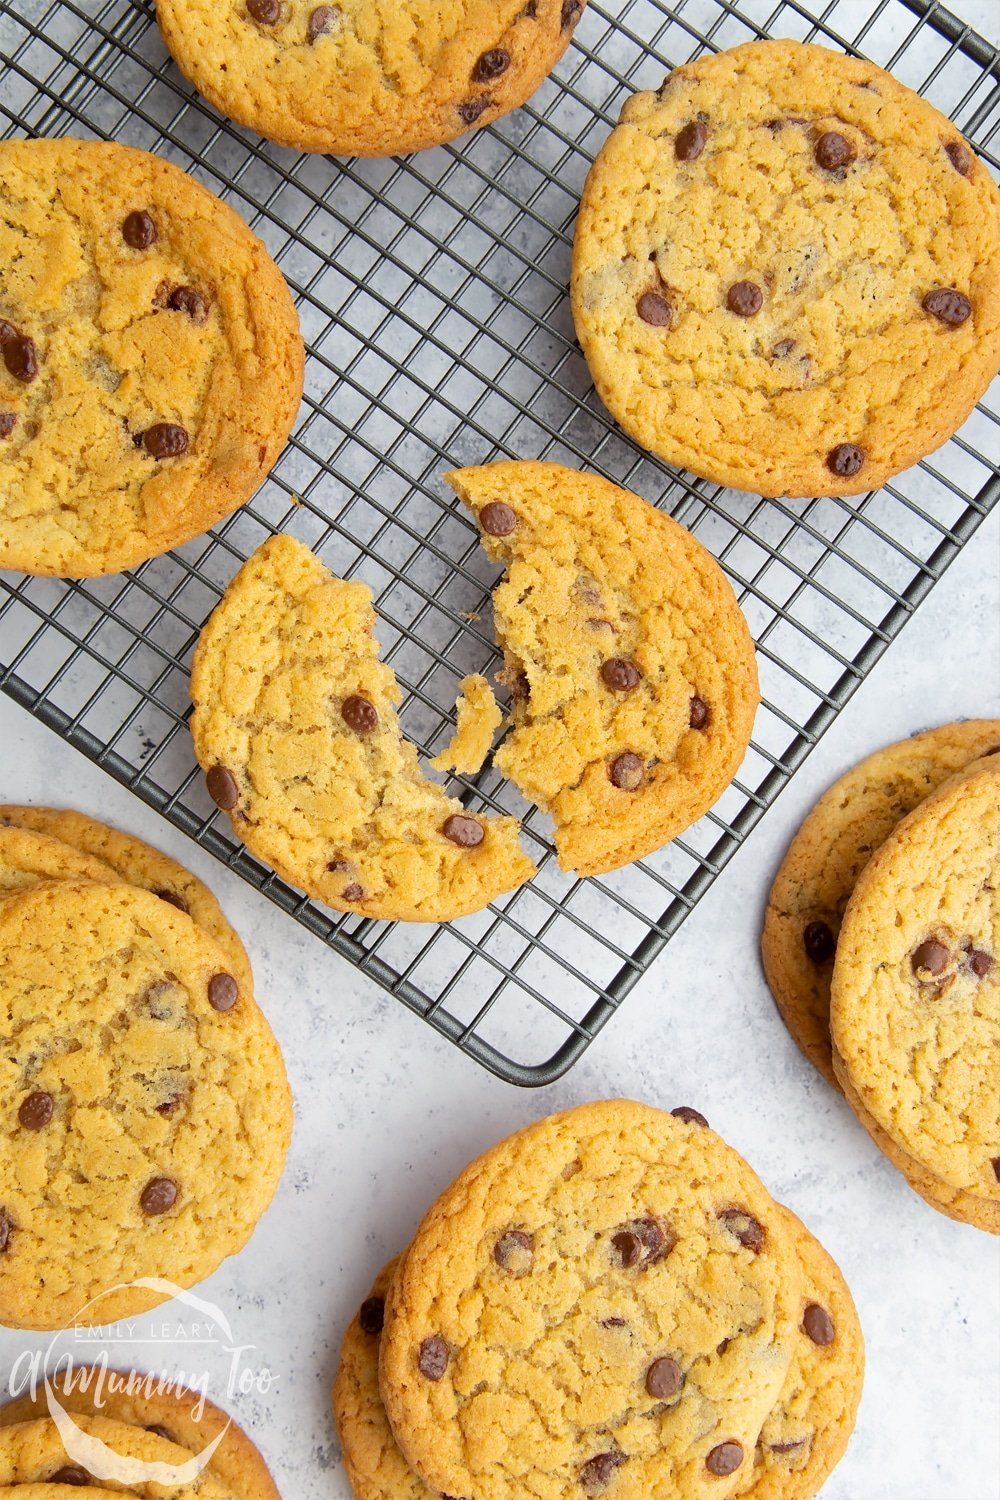 A selection of large dairy free chocolate chip cookies